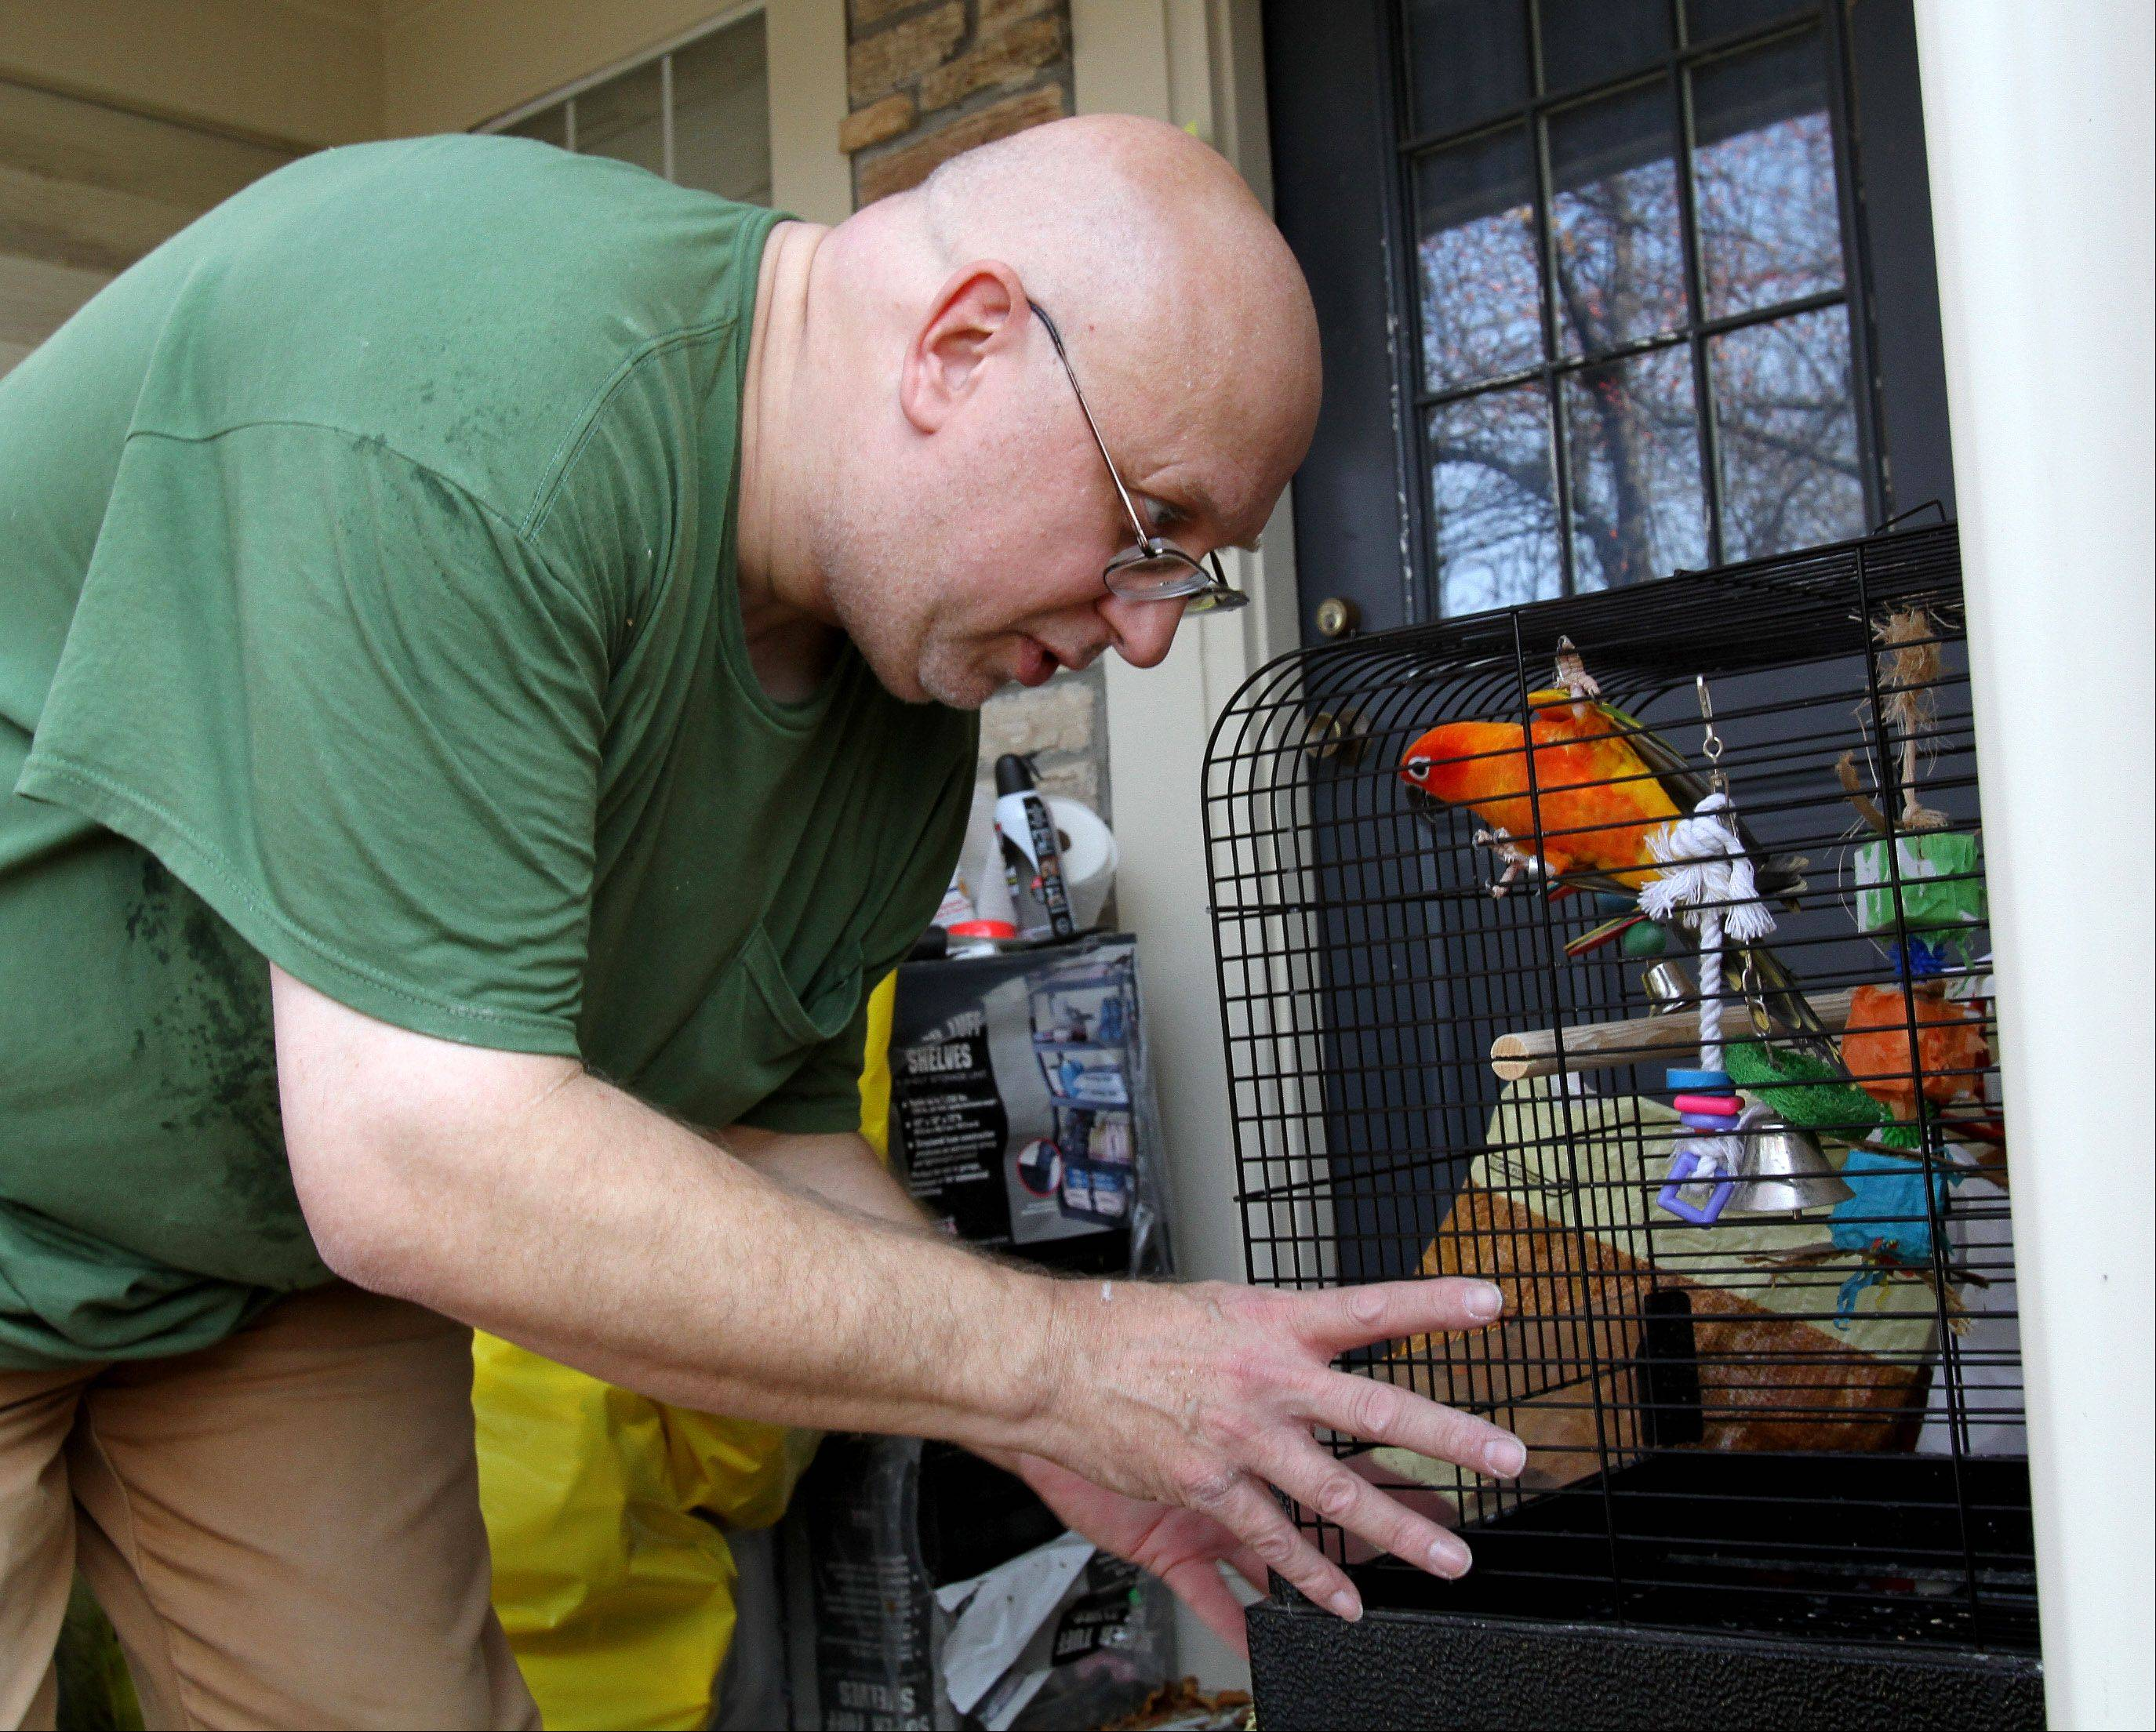 Dave Skeberdis of Aurora puts away one of his birds, a Sun Conure named Sweetheart. People for the Ethical Treatment of Animals wants the city of Aurora to press charges against Skeberdis for cruelty to animals after 478 birds -- 120 of them dead -- were discovered among mounds of clutter in his home.